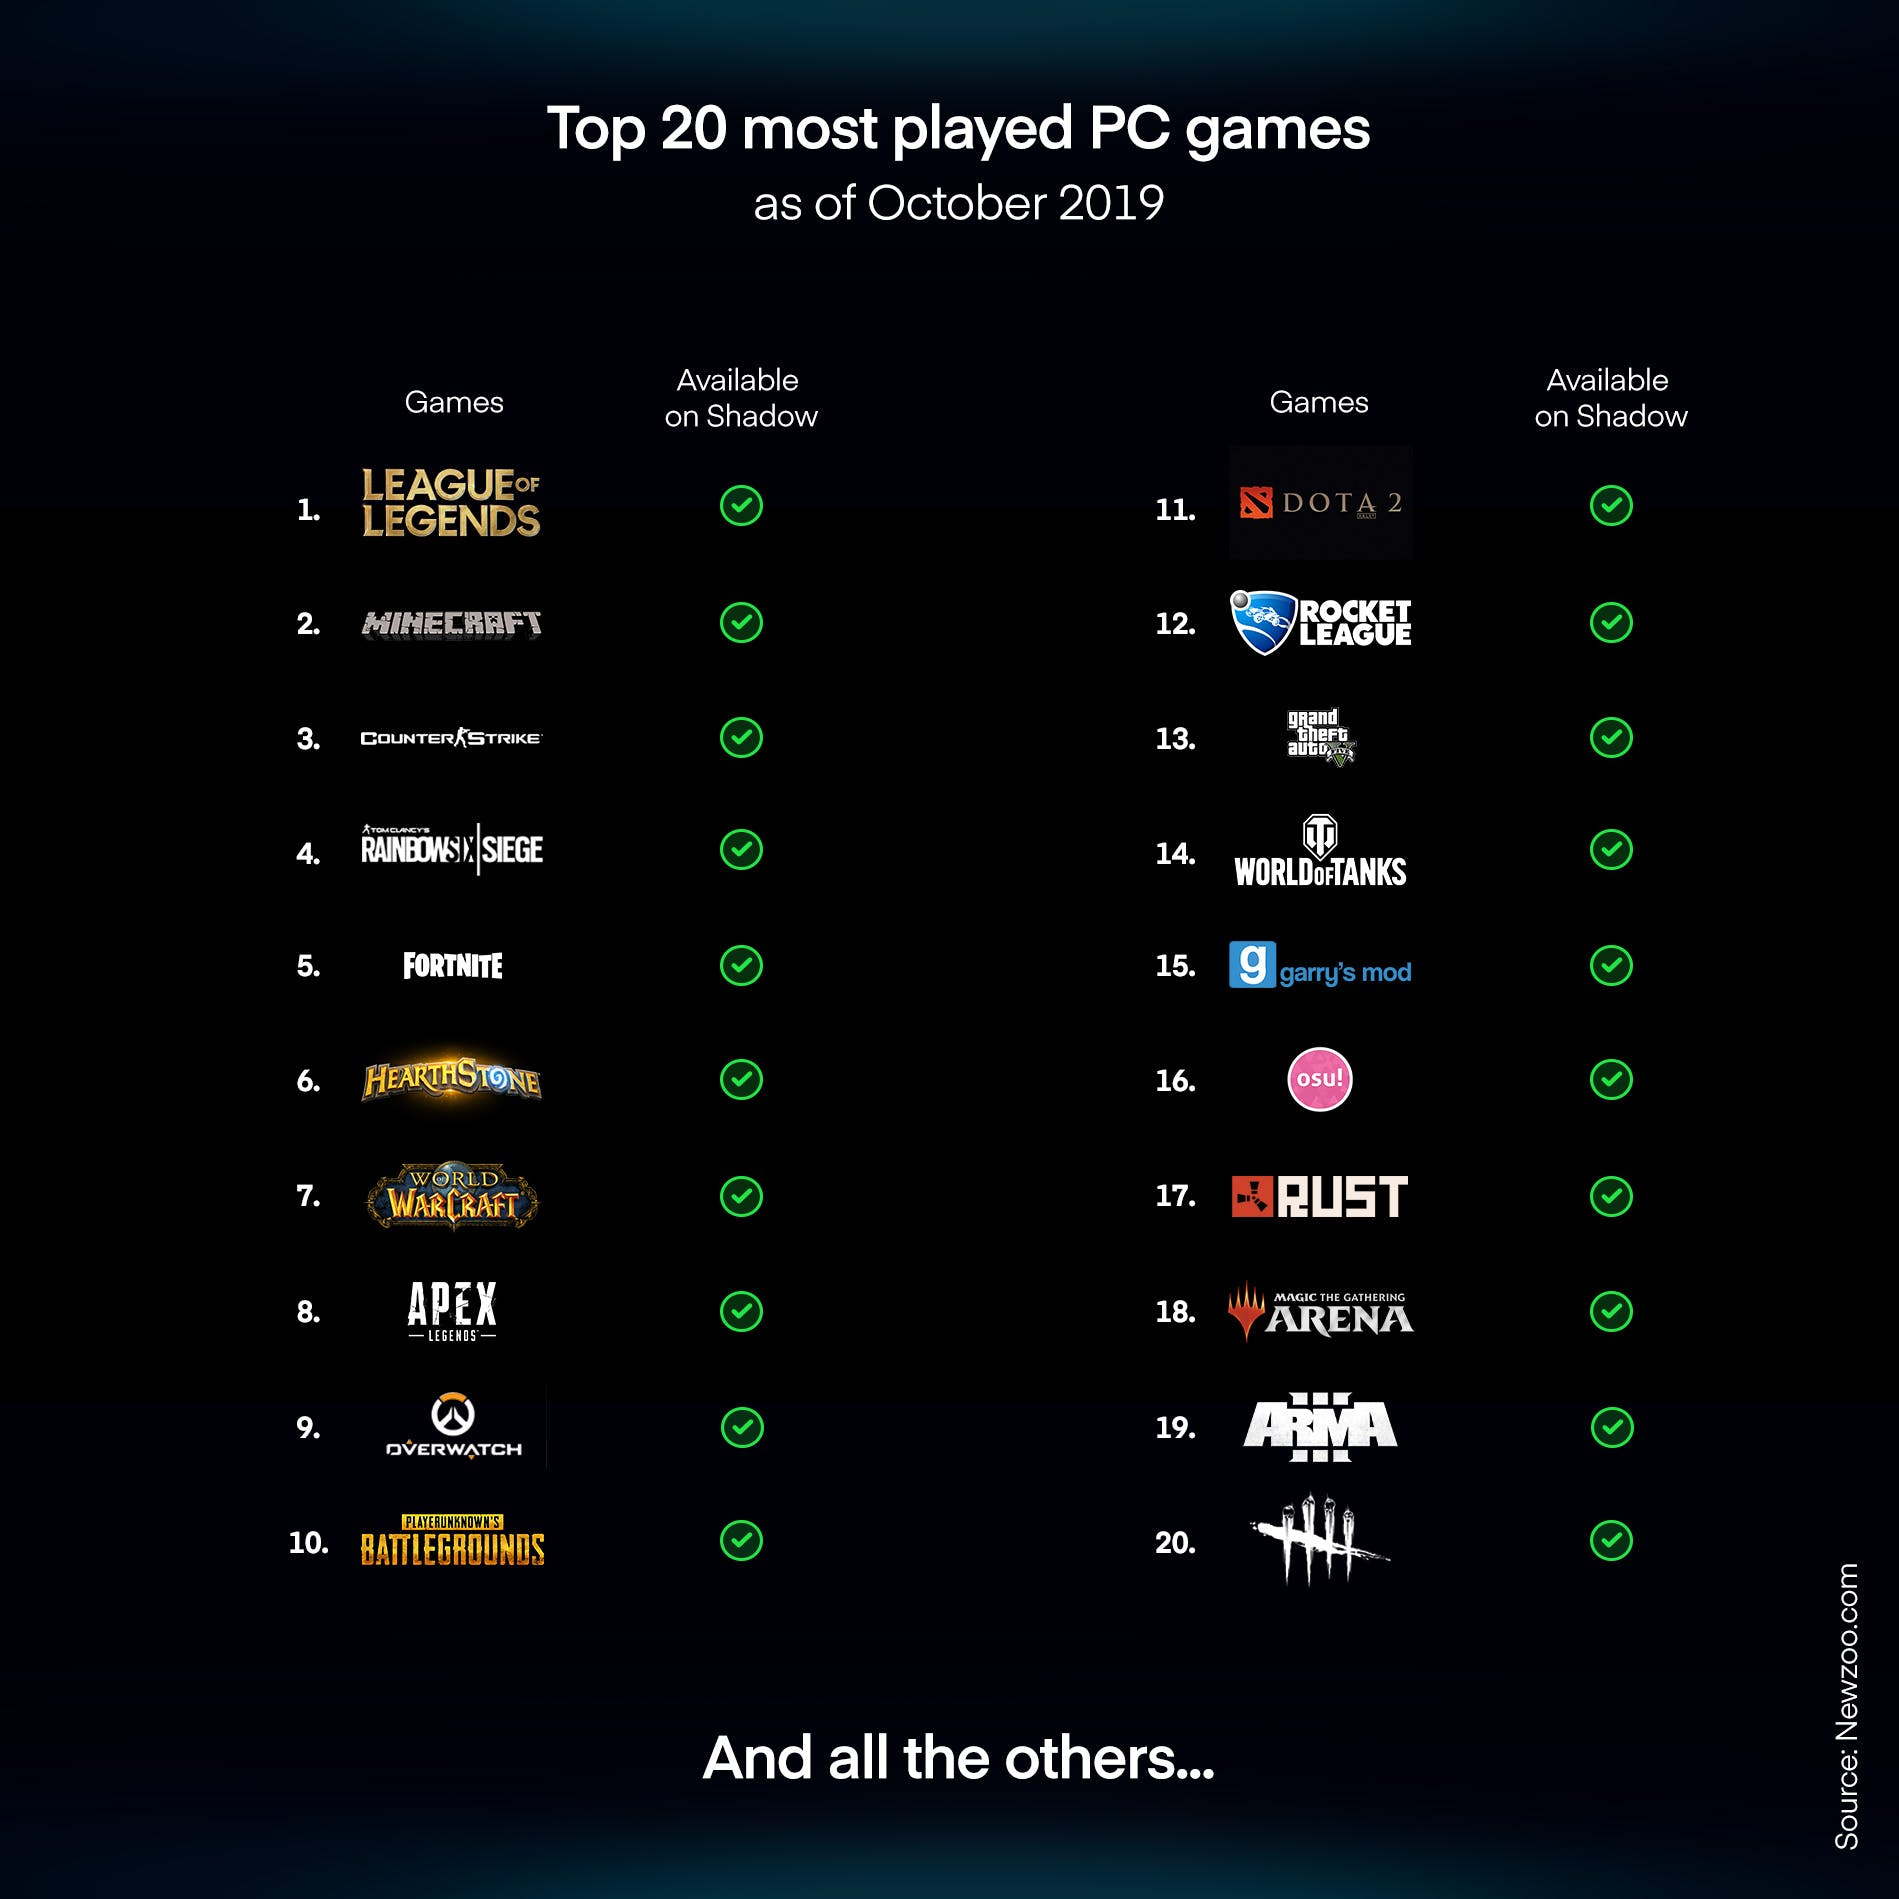 All the TOP 20 games can be played with Shadow? But which games can be played on Stadia